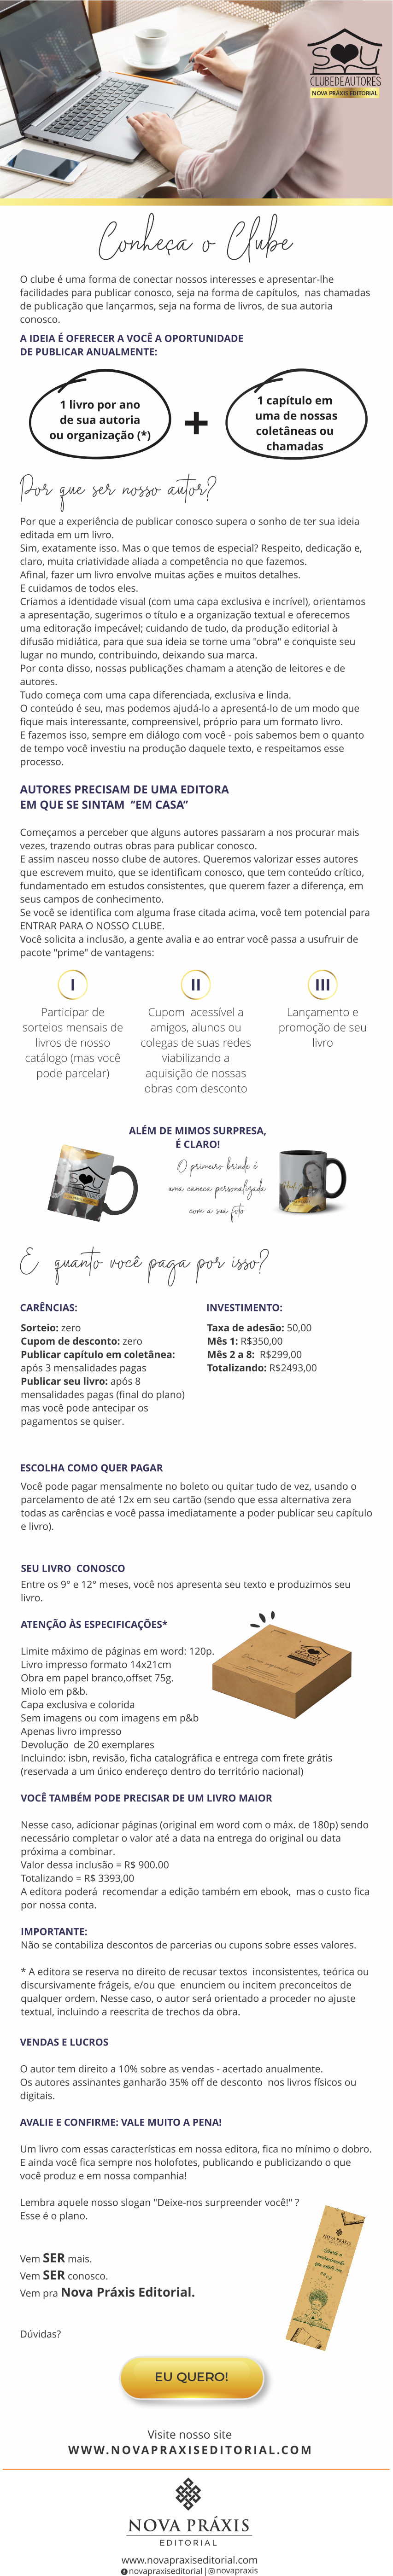 EMAIL CLUBE DO AUTOR